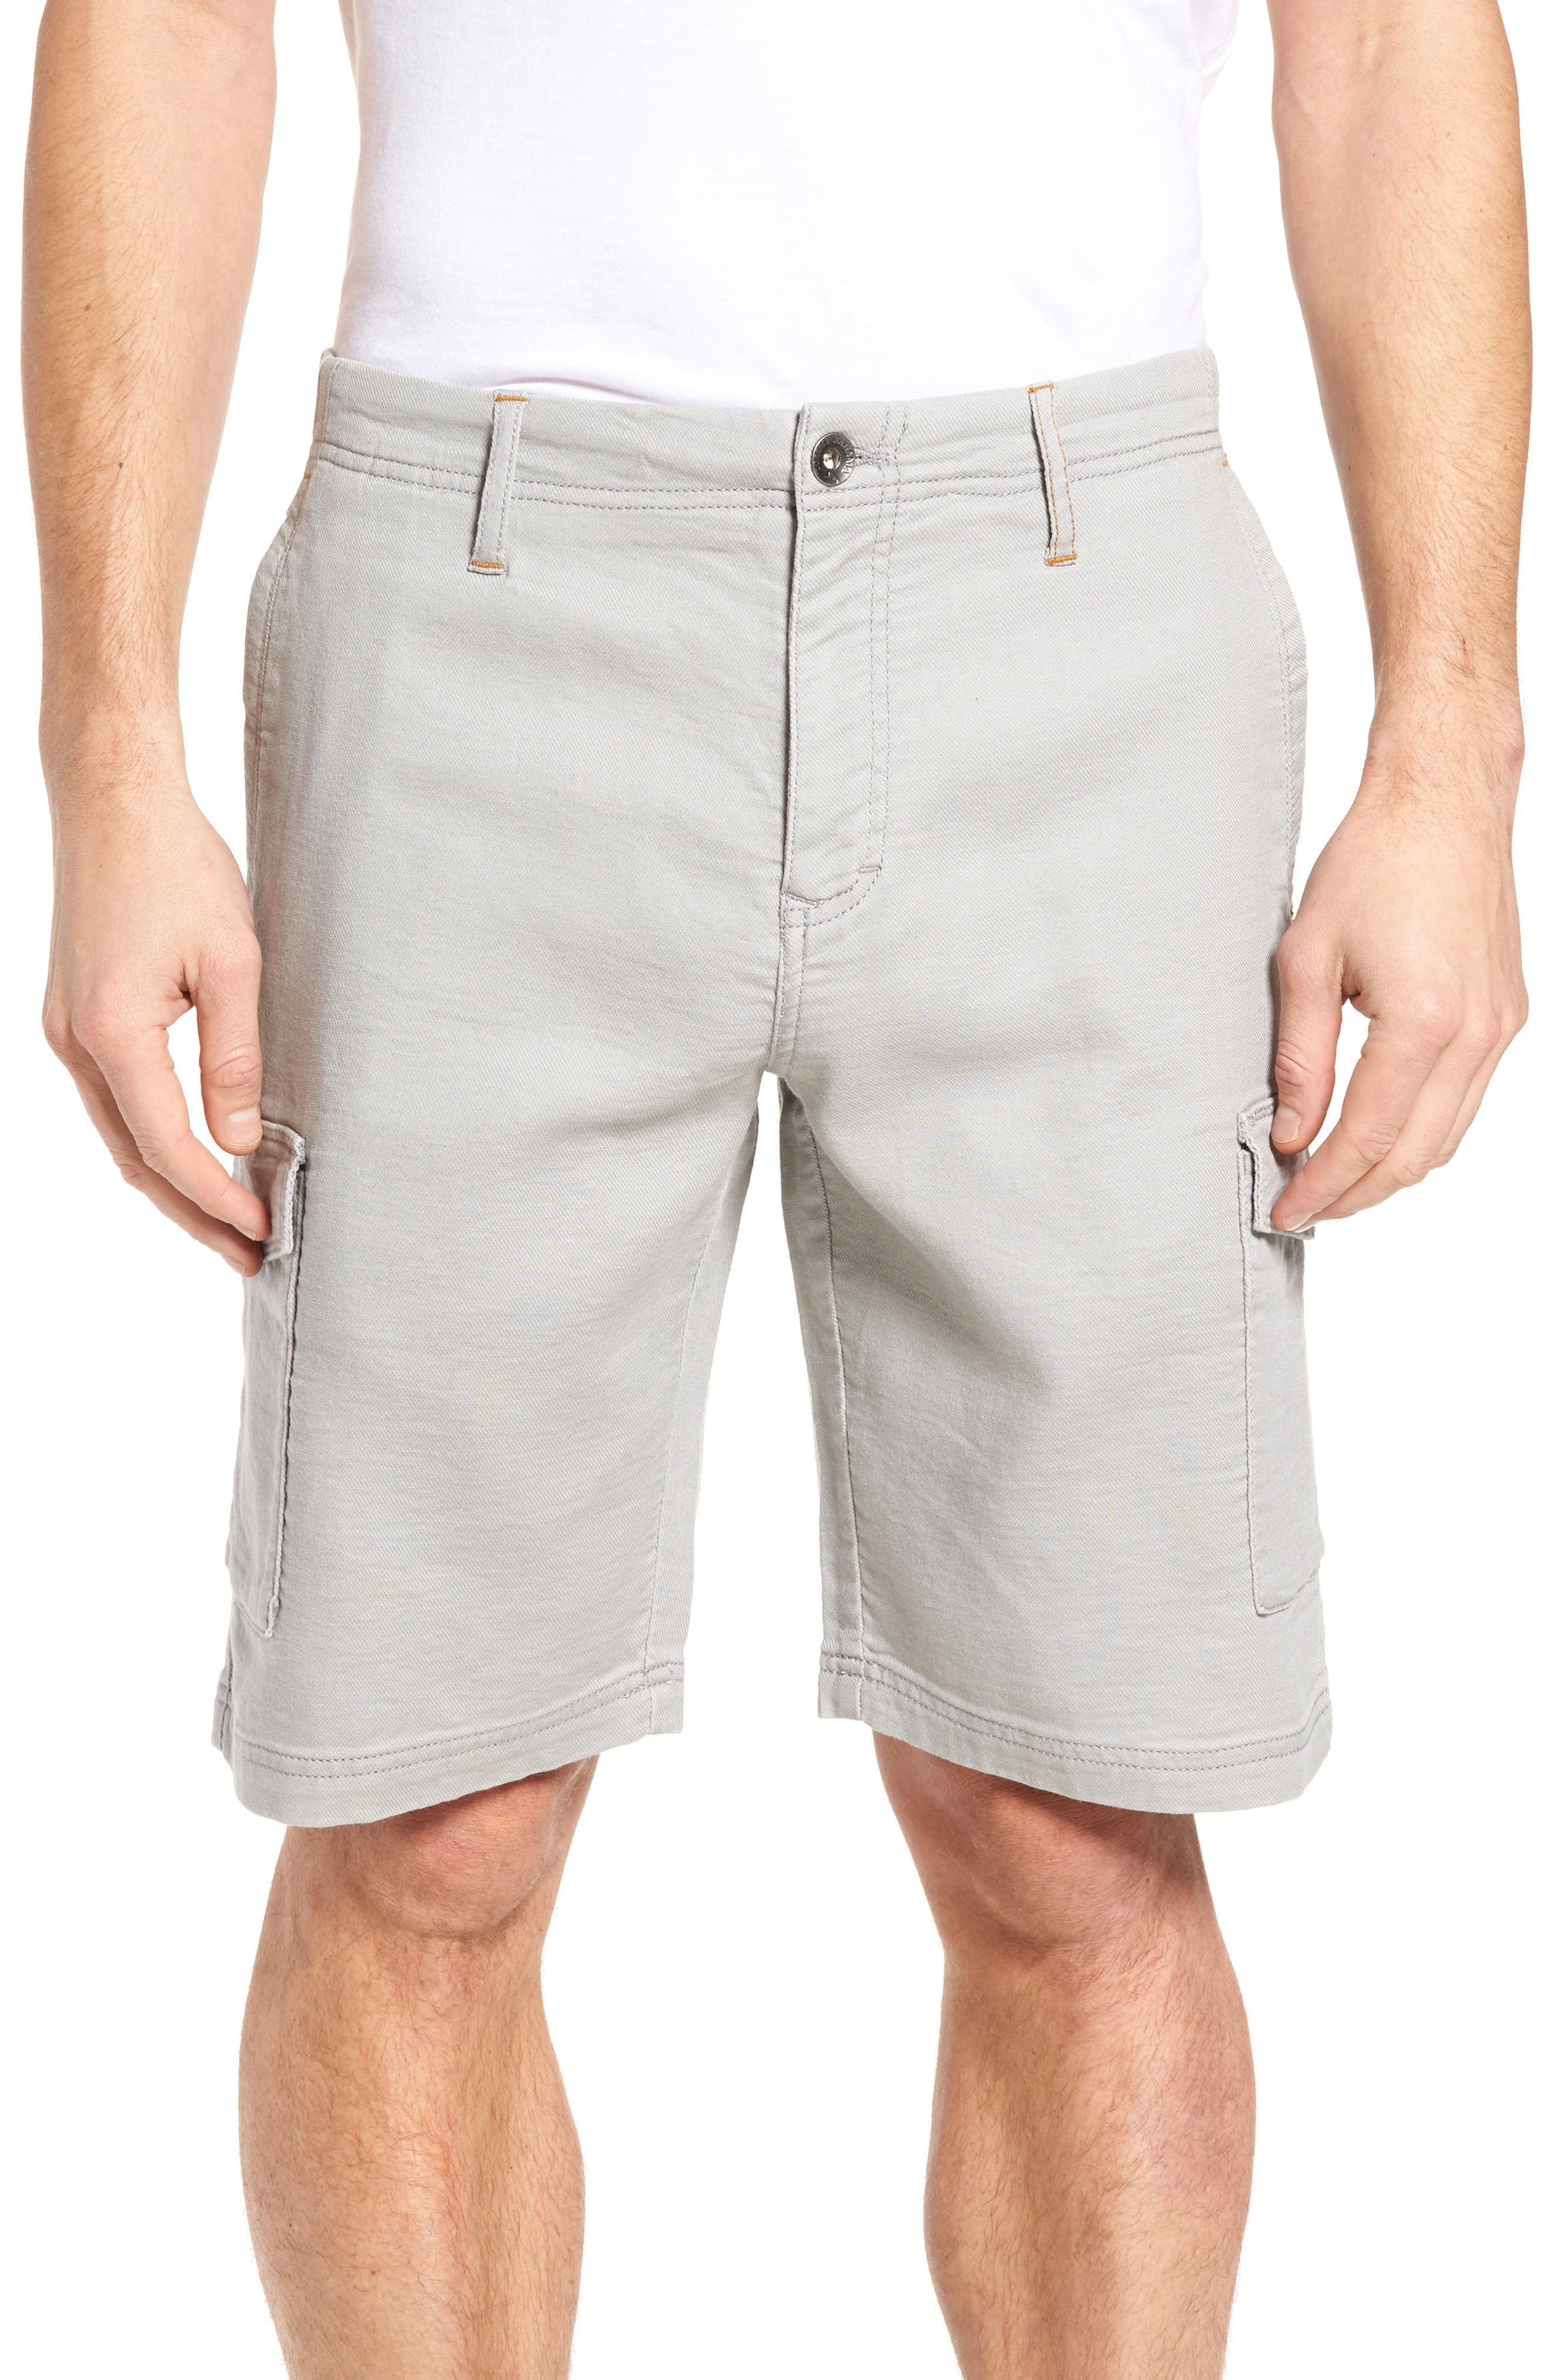 Edgewood Cargo Shorts,                             Main thumbnail 1, color,                             Argent